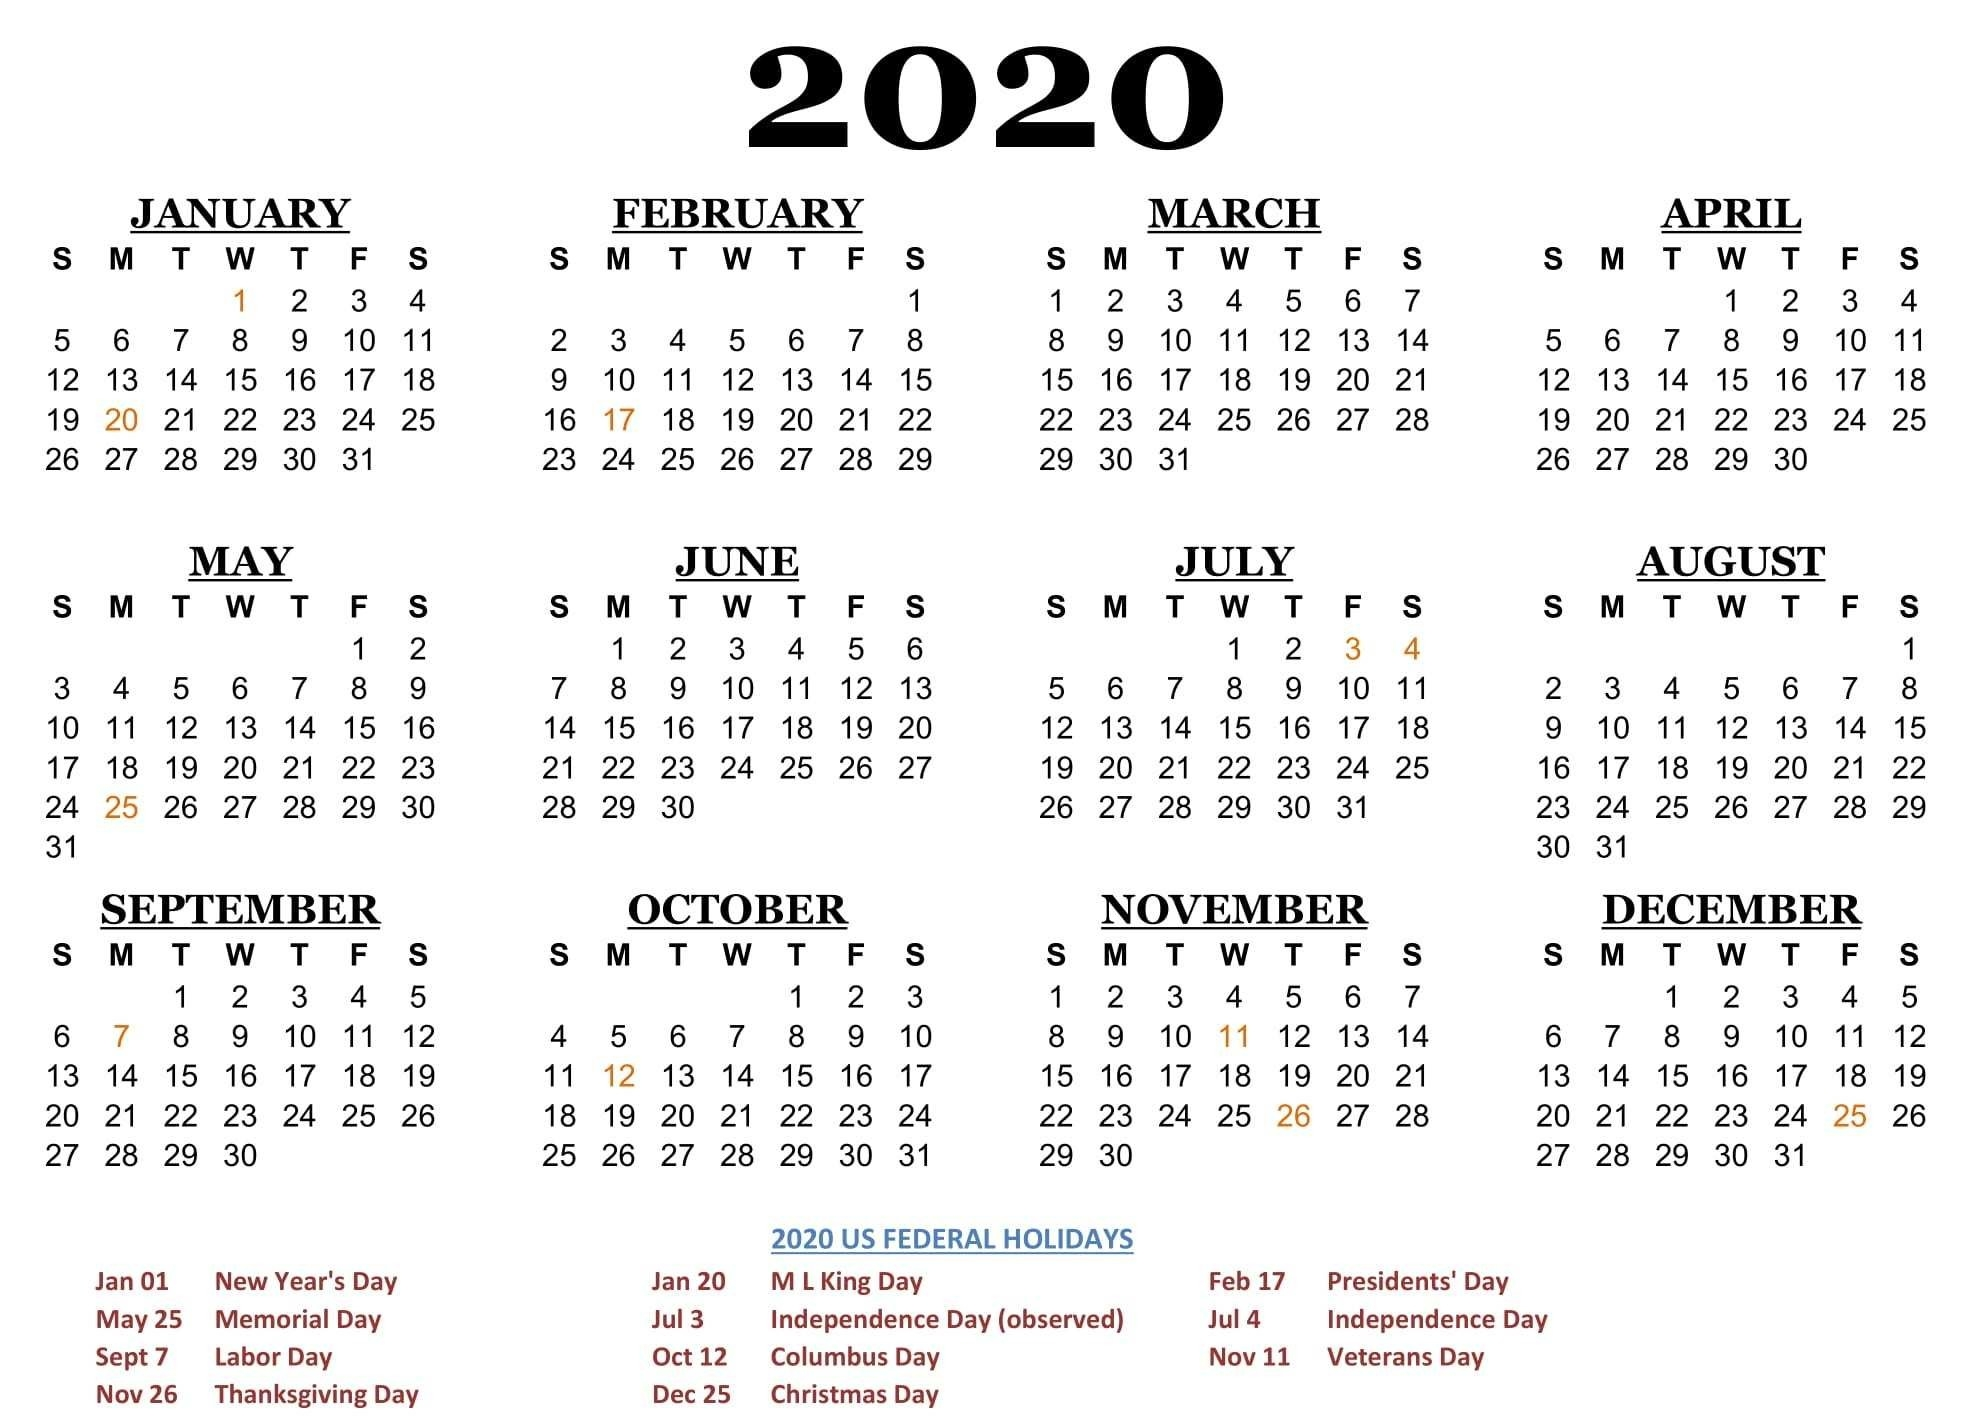 2020 One Page Calendar Printable Download | Calendarbuzz  2020 Calendar With Holidays Printable One Page